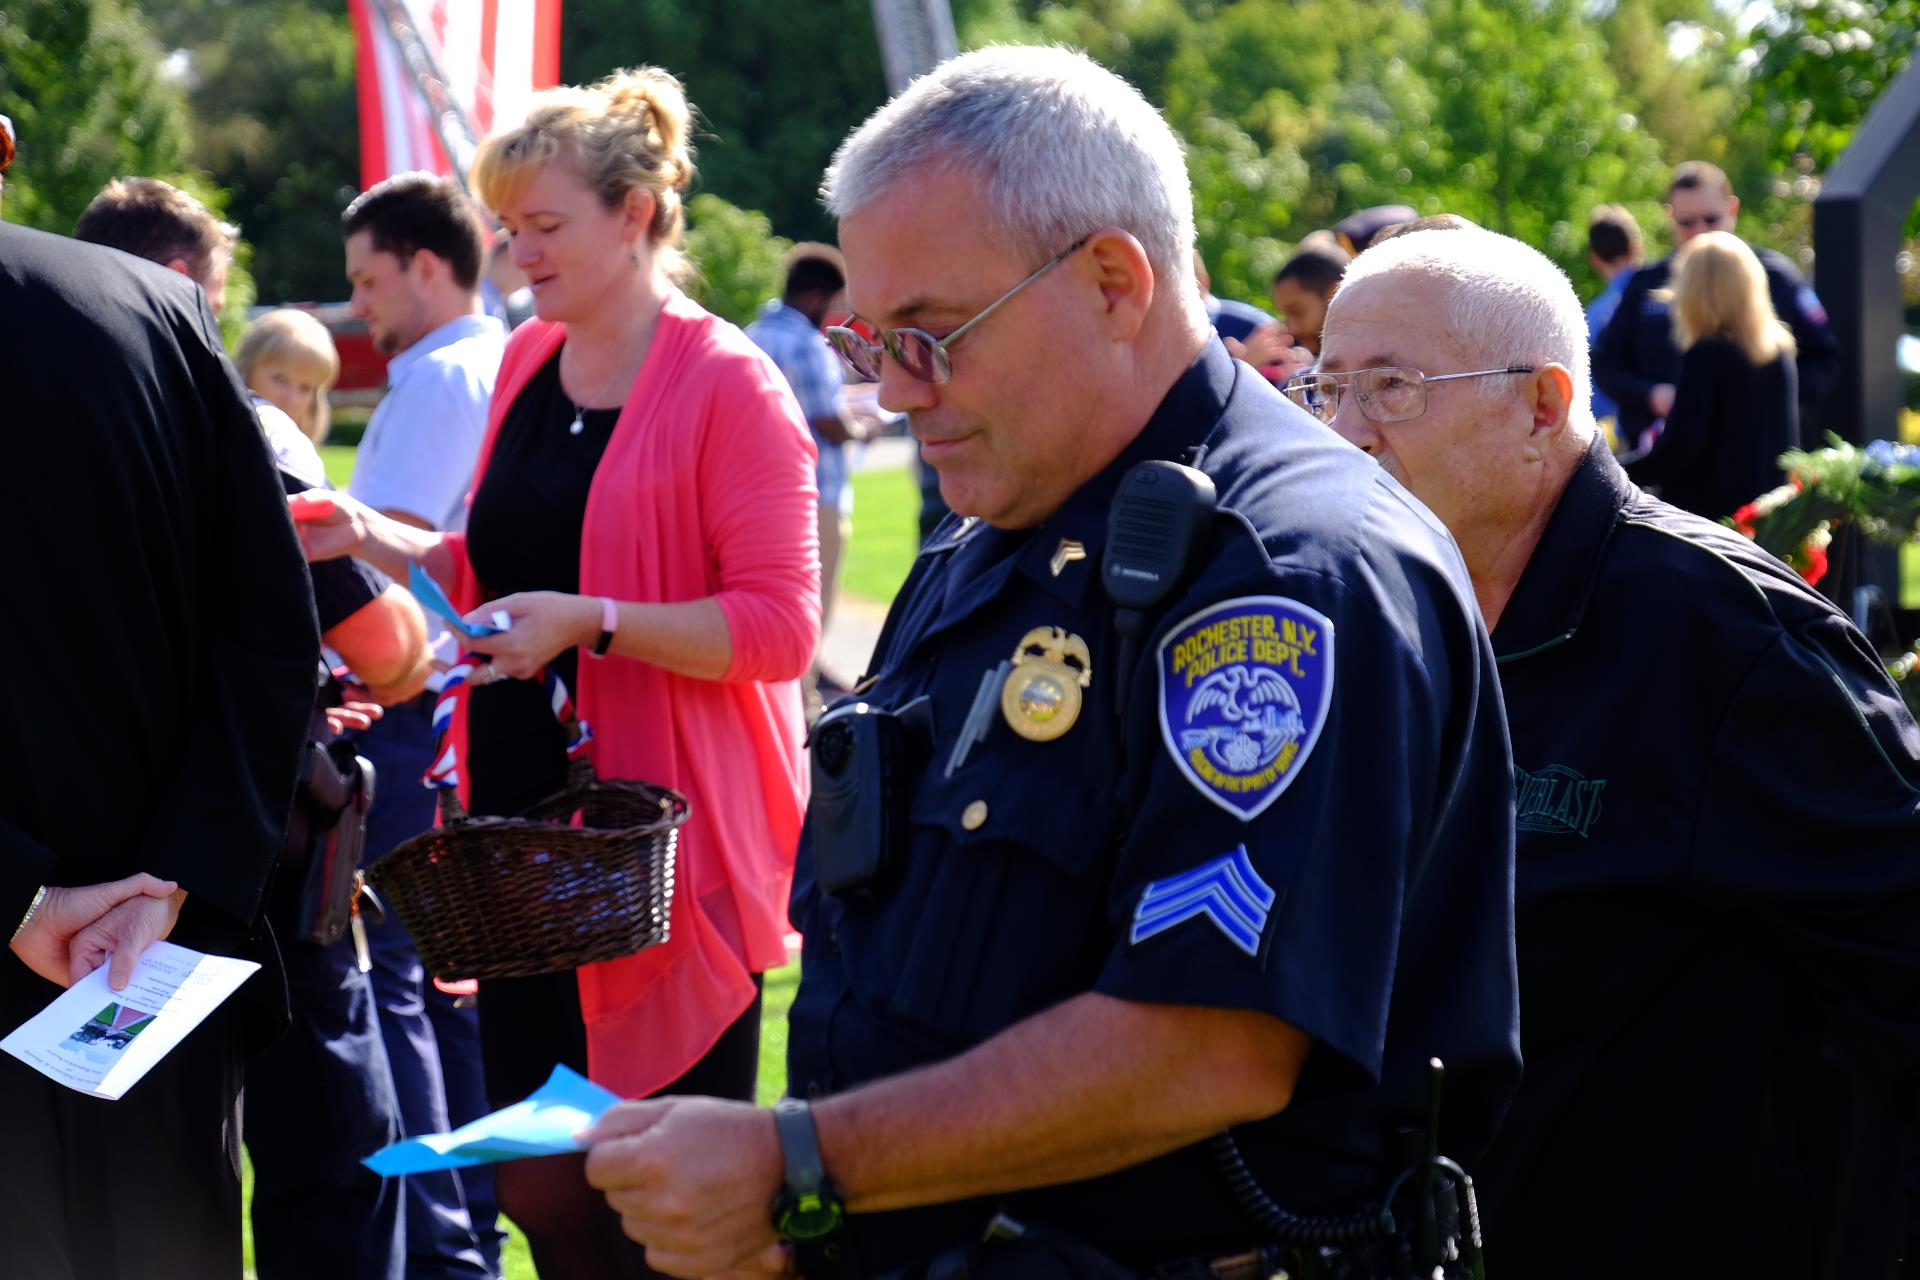 Police officer at an event